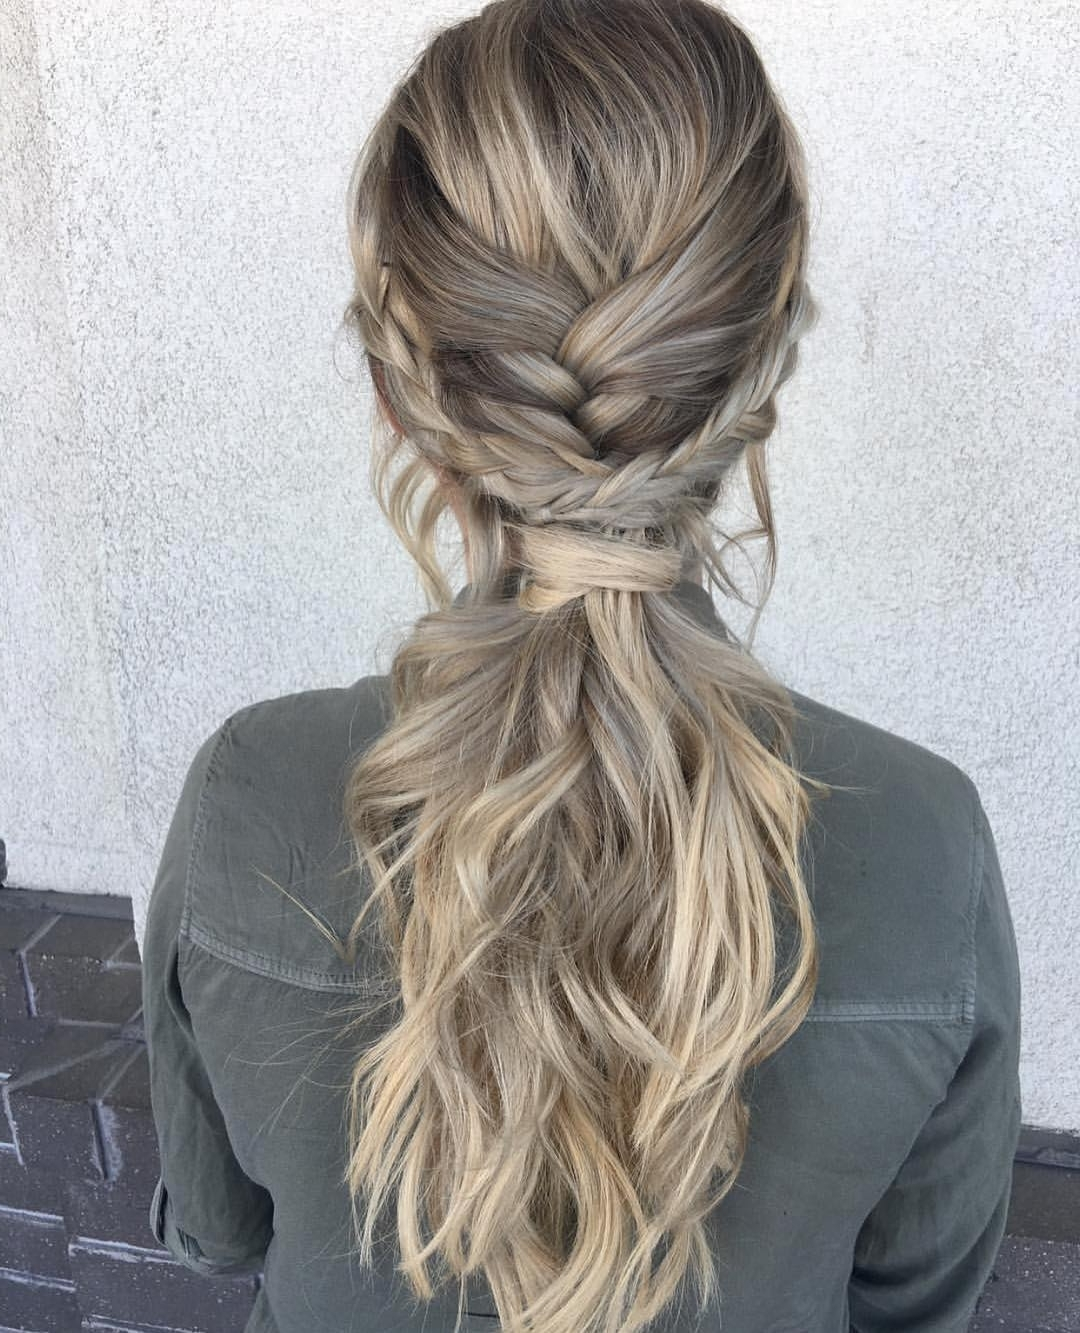 10 Ultra Ponytail Braided Hairstyles For Long Hair; Parties! 2018 Within Favorite Pony Hairstyles With Textured Braid (View 2 of 20)